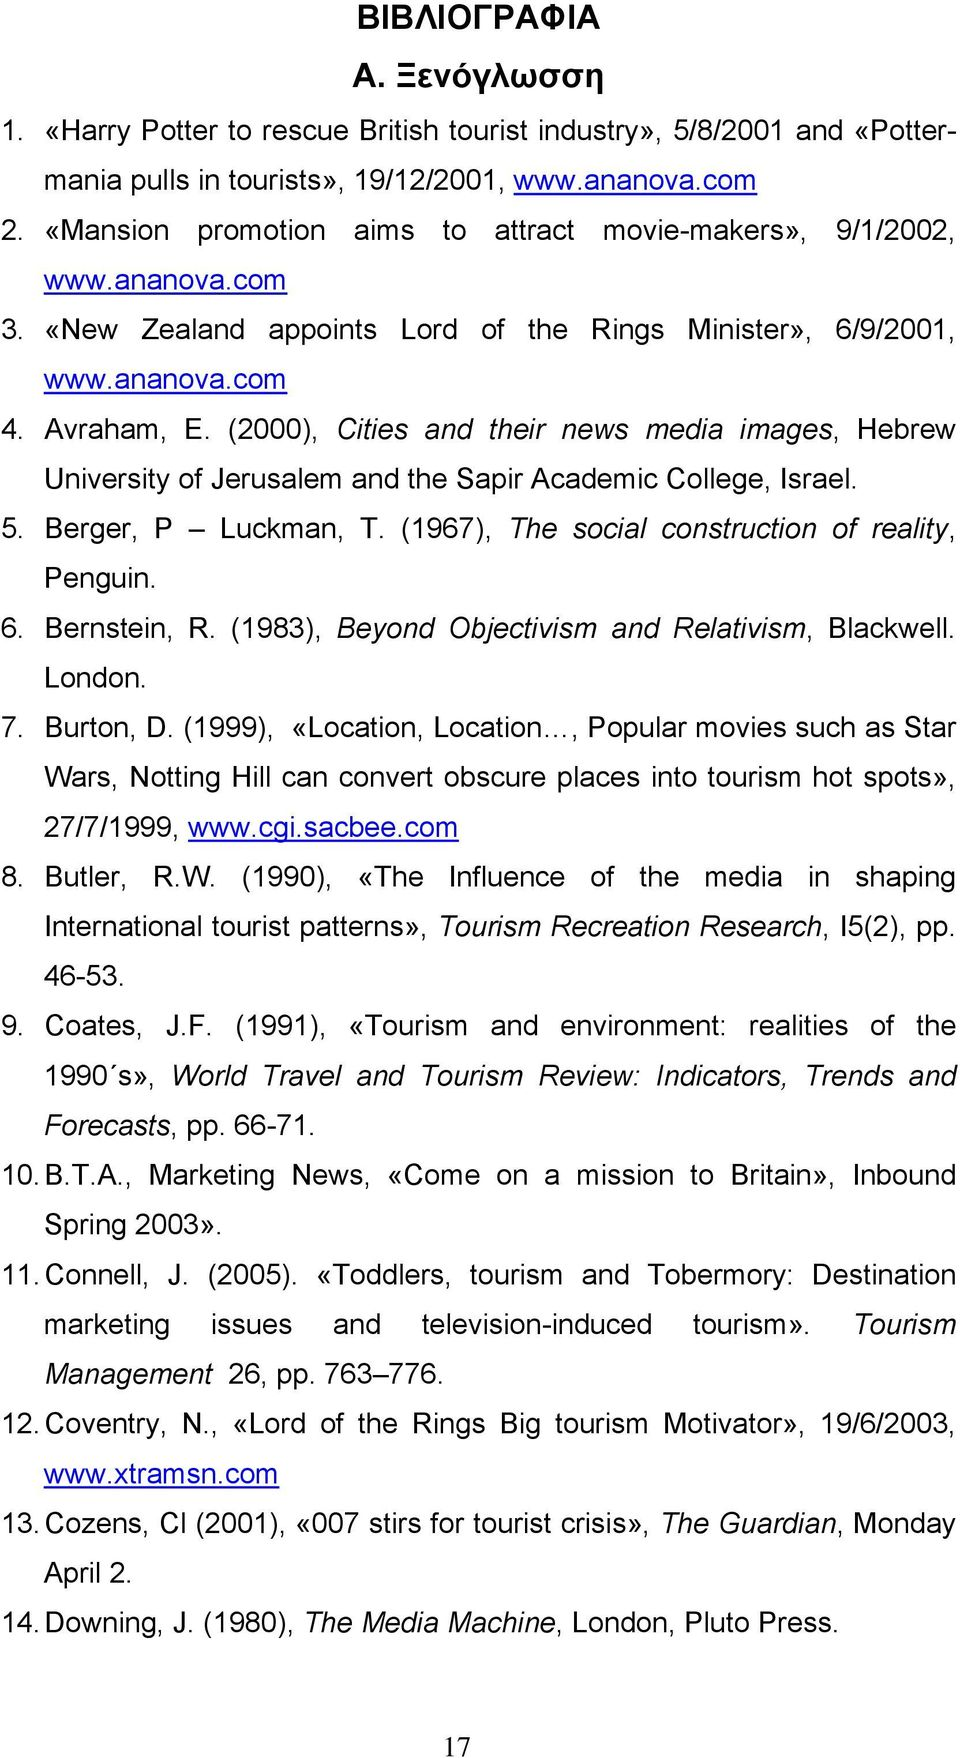 (2000), Cities and their news media images, Hebrew University of Jerusalem and the Sapir Academic College, Israel. 5. Berger, P Luckman, T. (1967), The social construction of reality, Penguin. 6.